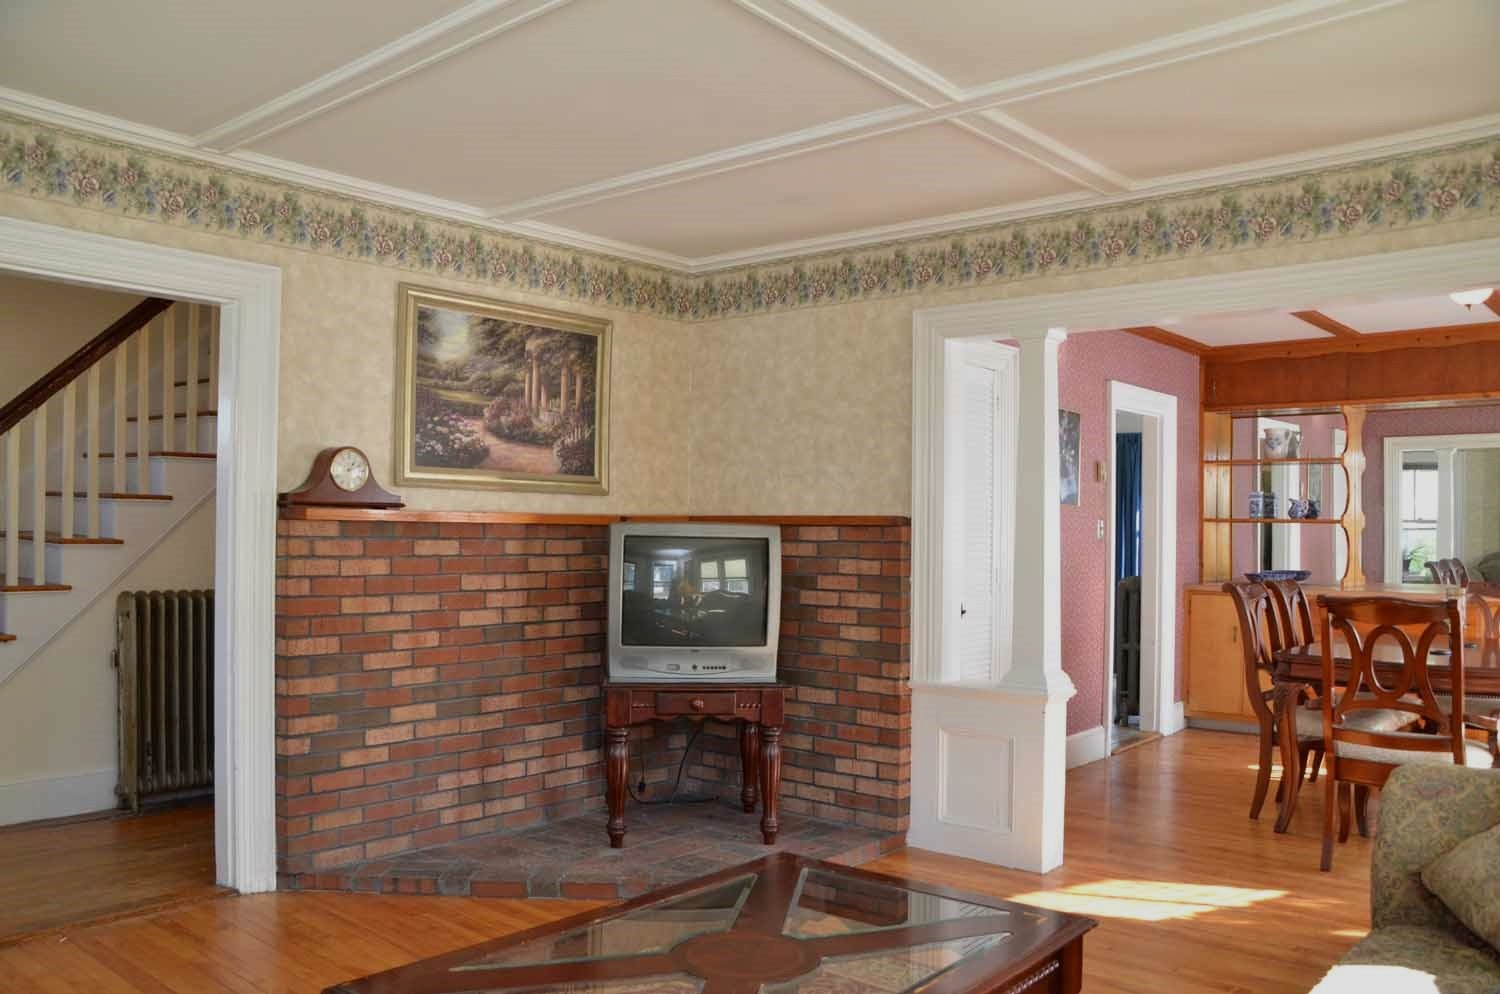 SoPo Cottage: April 2012 - Livingroom With Brick Wall To Kitchen